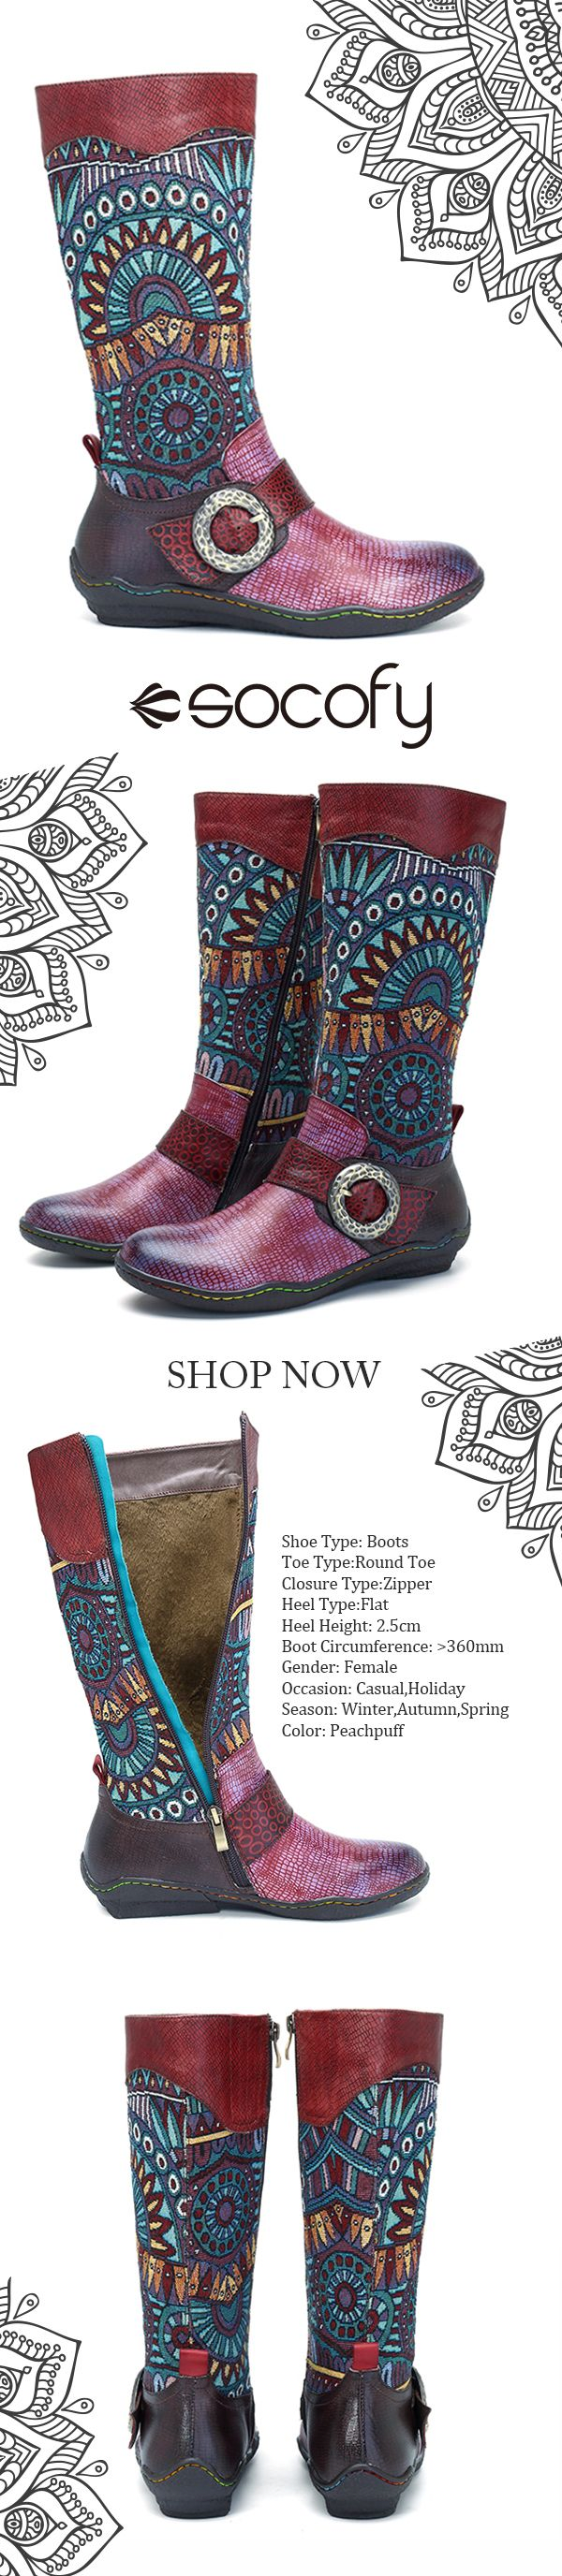 US$74.31 SOCOFY Bohemian Splicing Snake Pattern Buckle Flat Leather Knee Boots